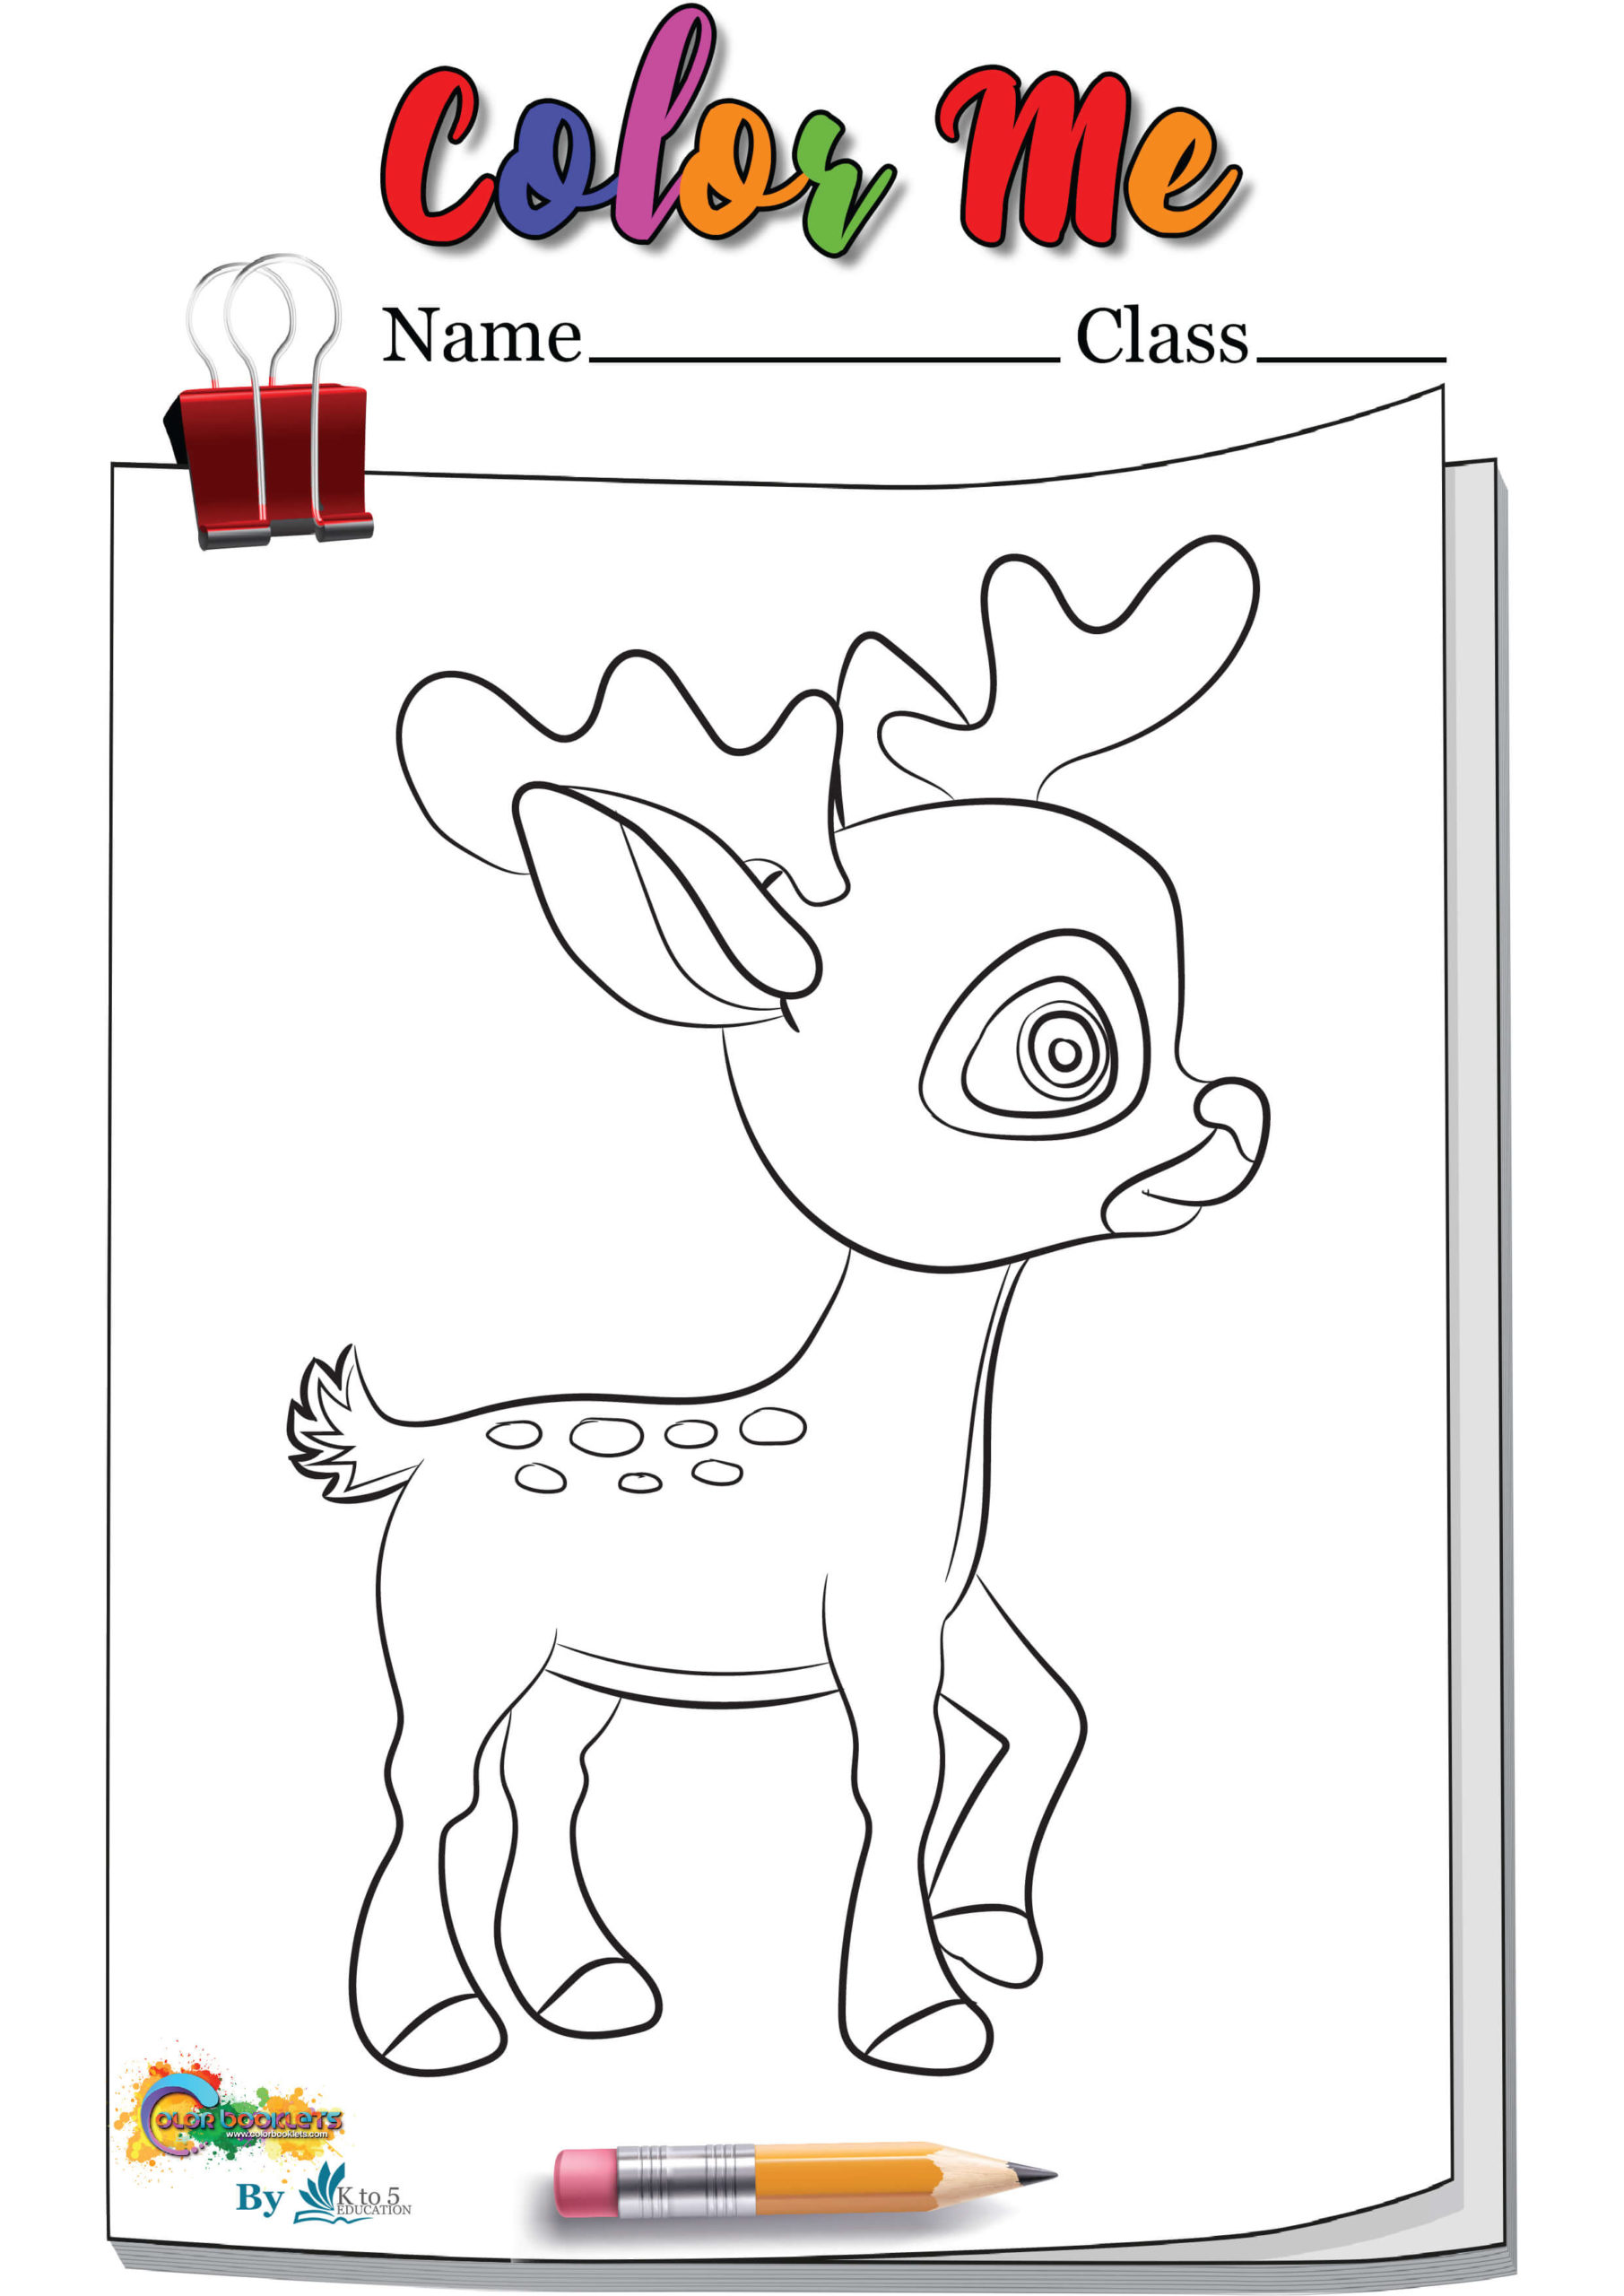 Dear Standing Coloring page Worksheet